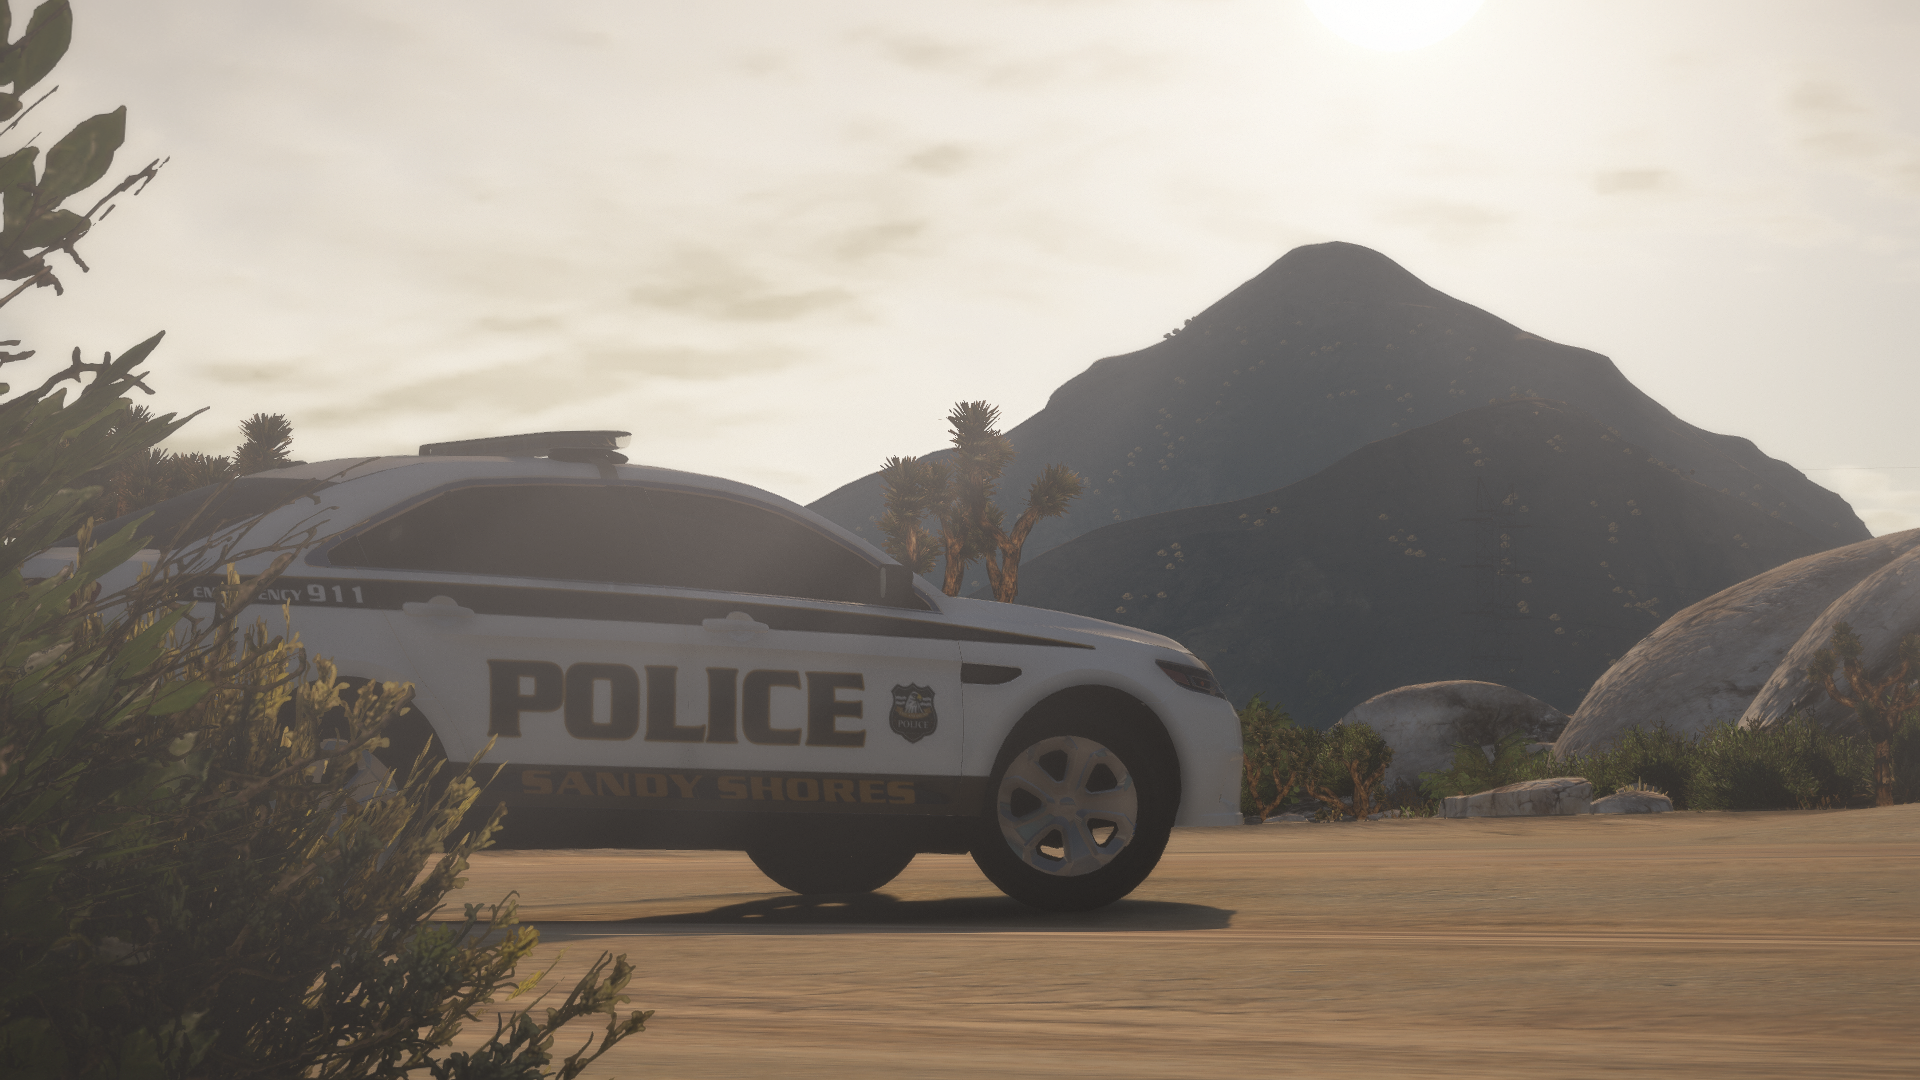 Grand Theft Auto V 8_15_2019 6_51_54 PM.png